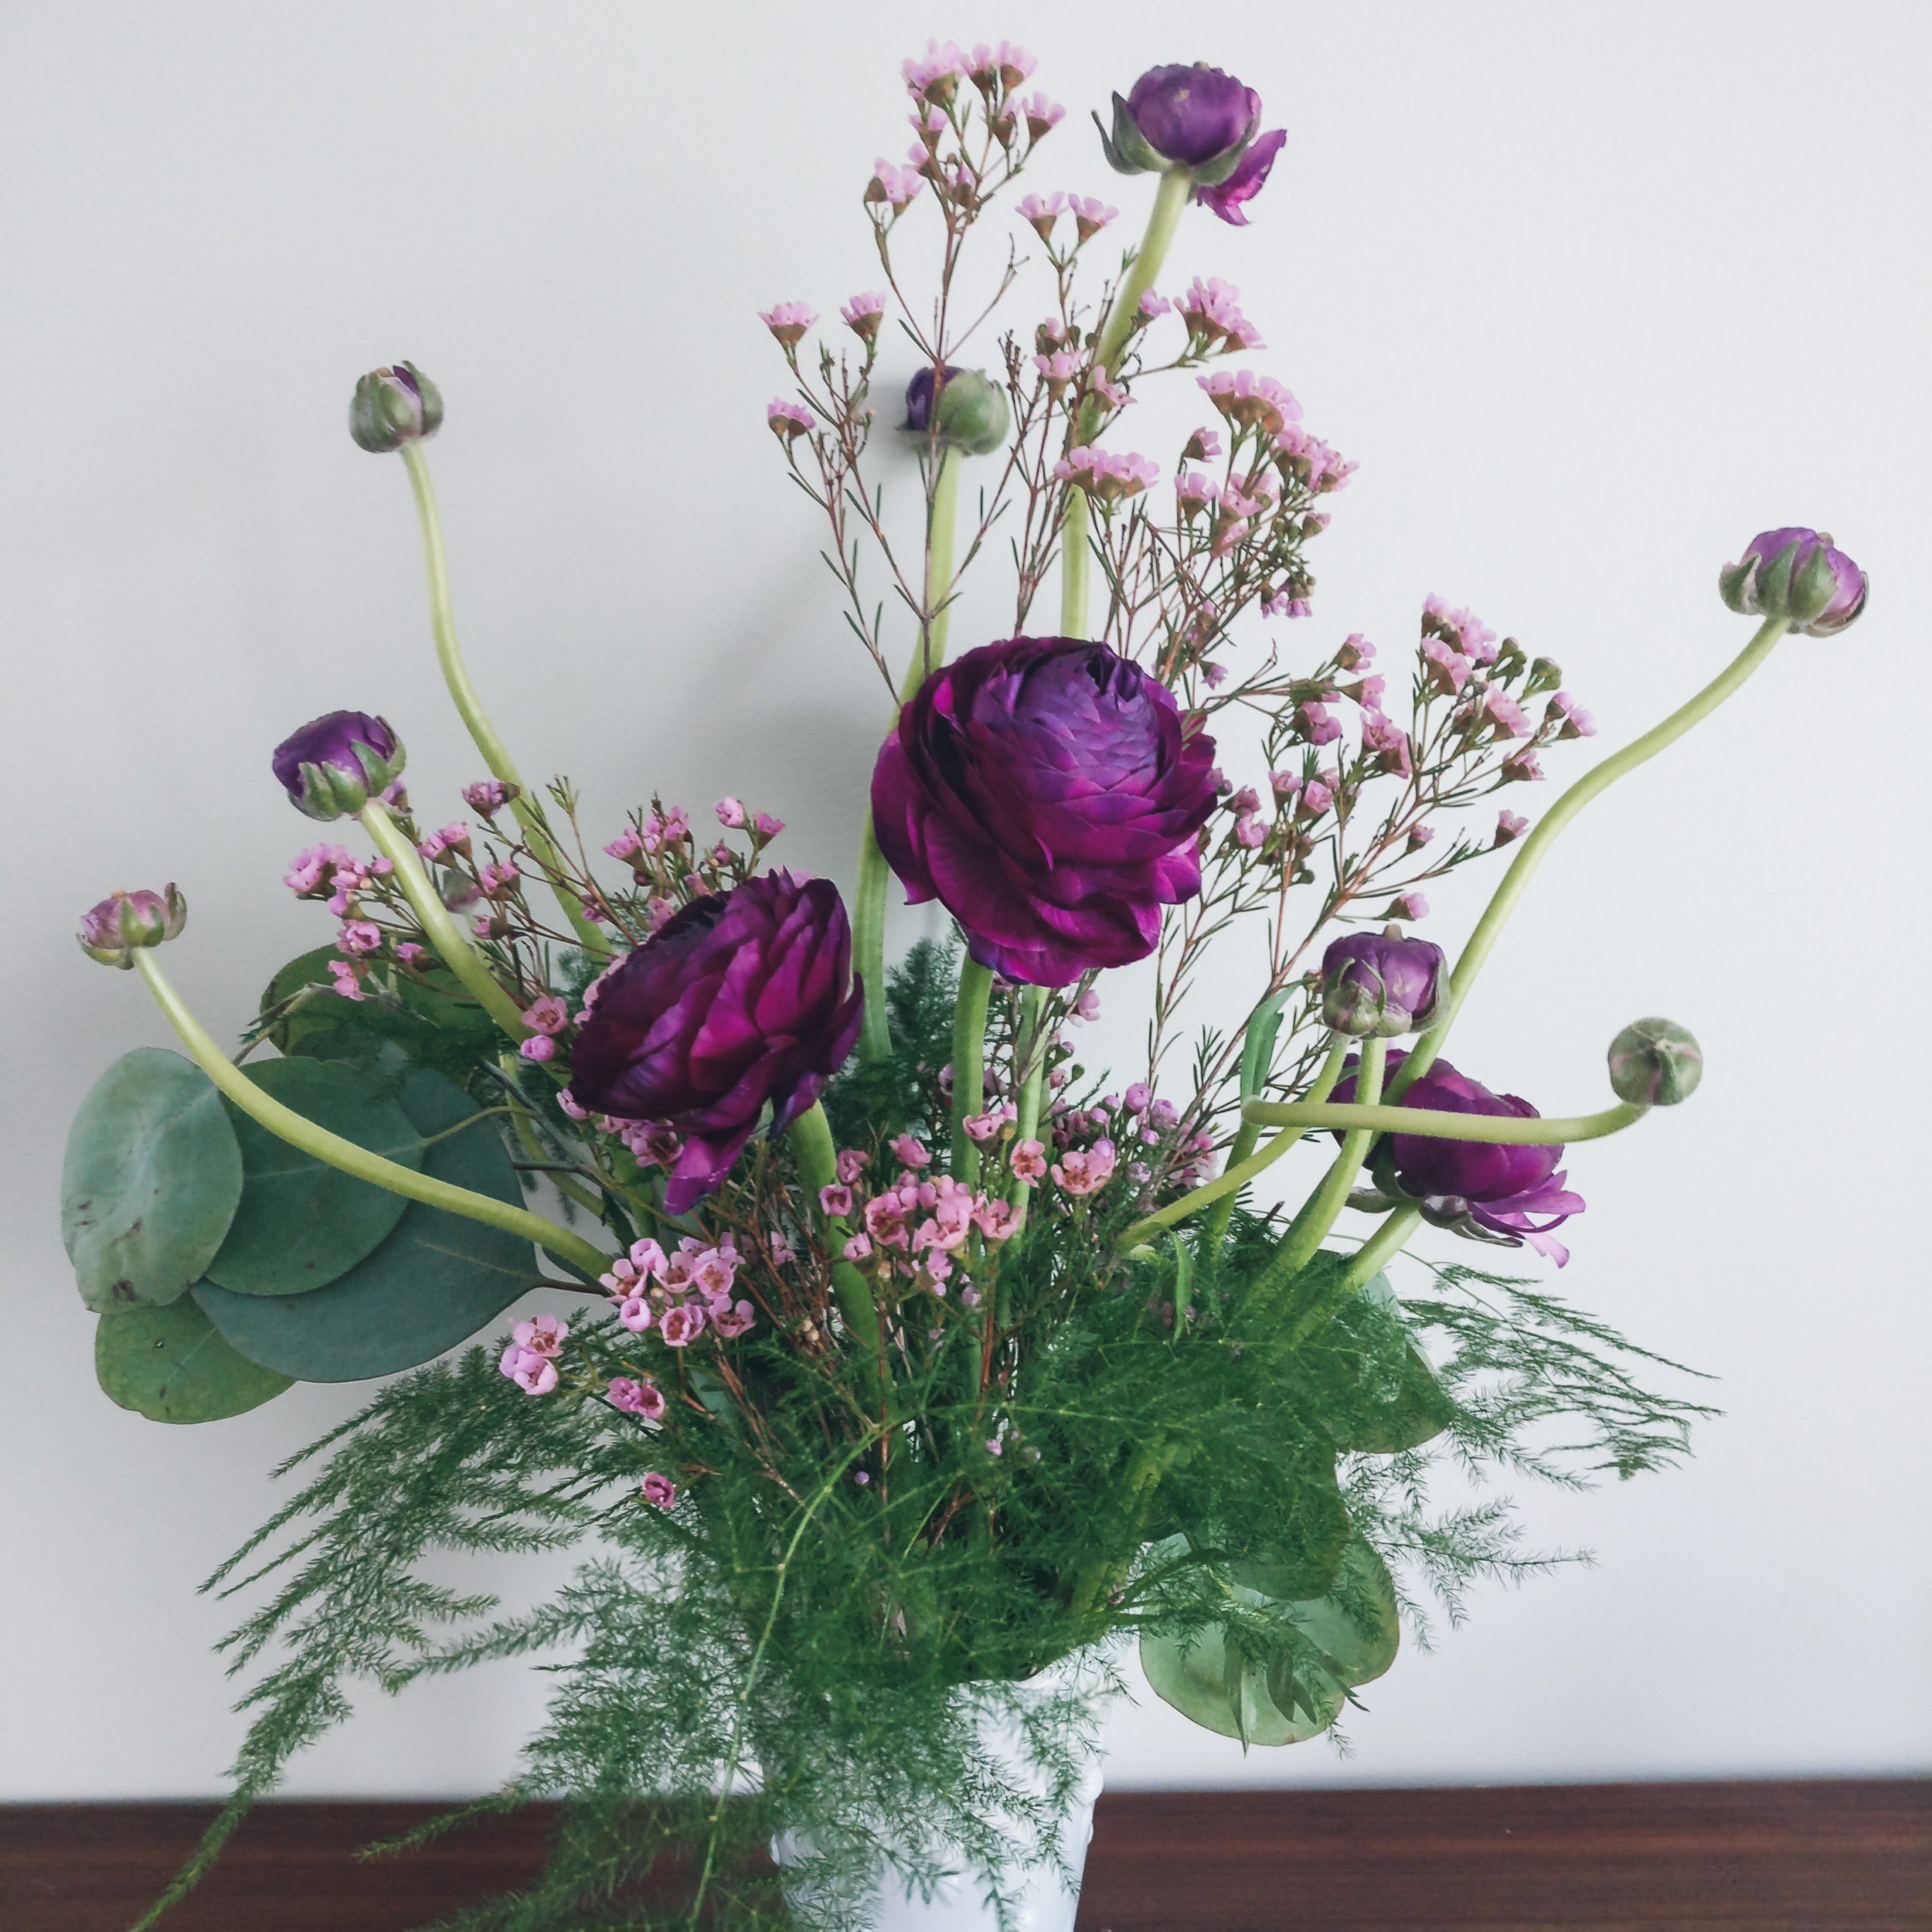 Seasonal Spring Flower - Purple Ranunculus.jpg